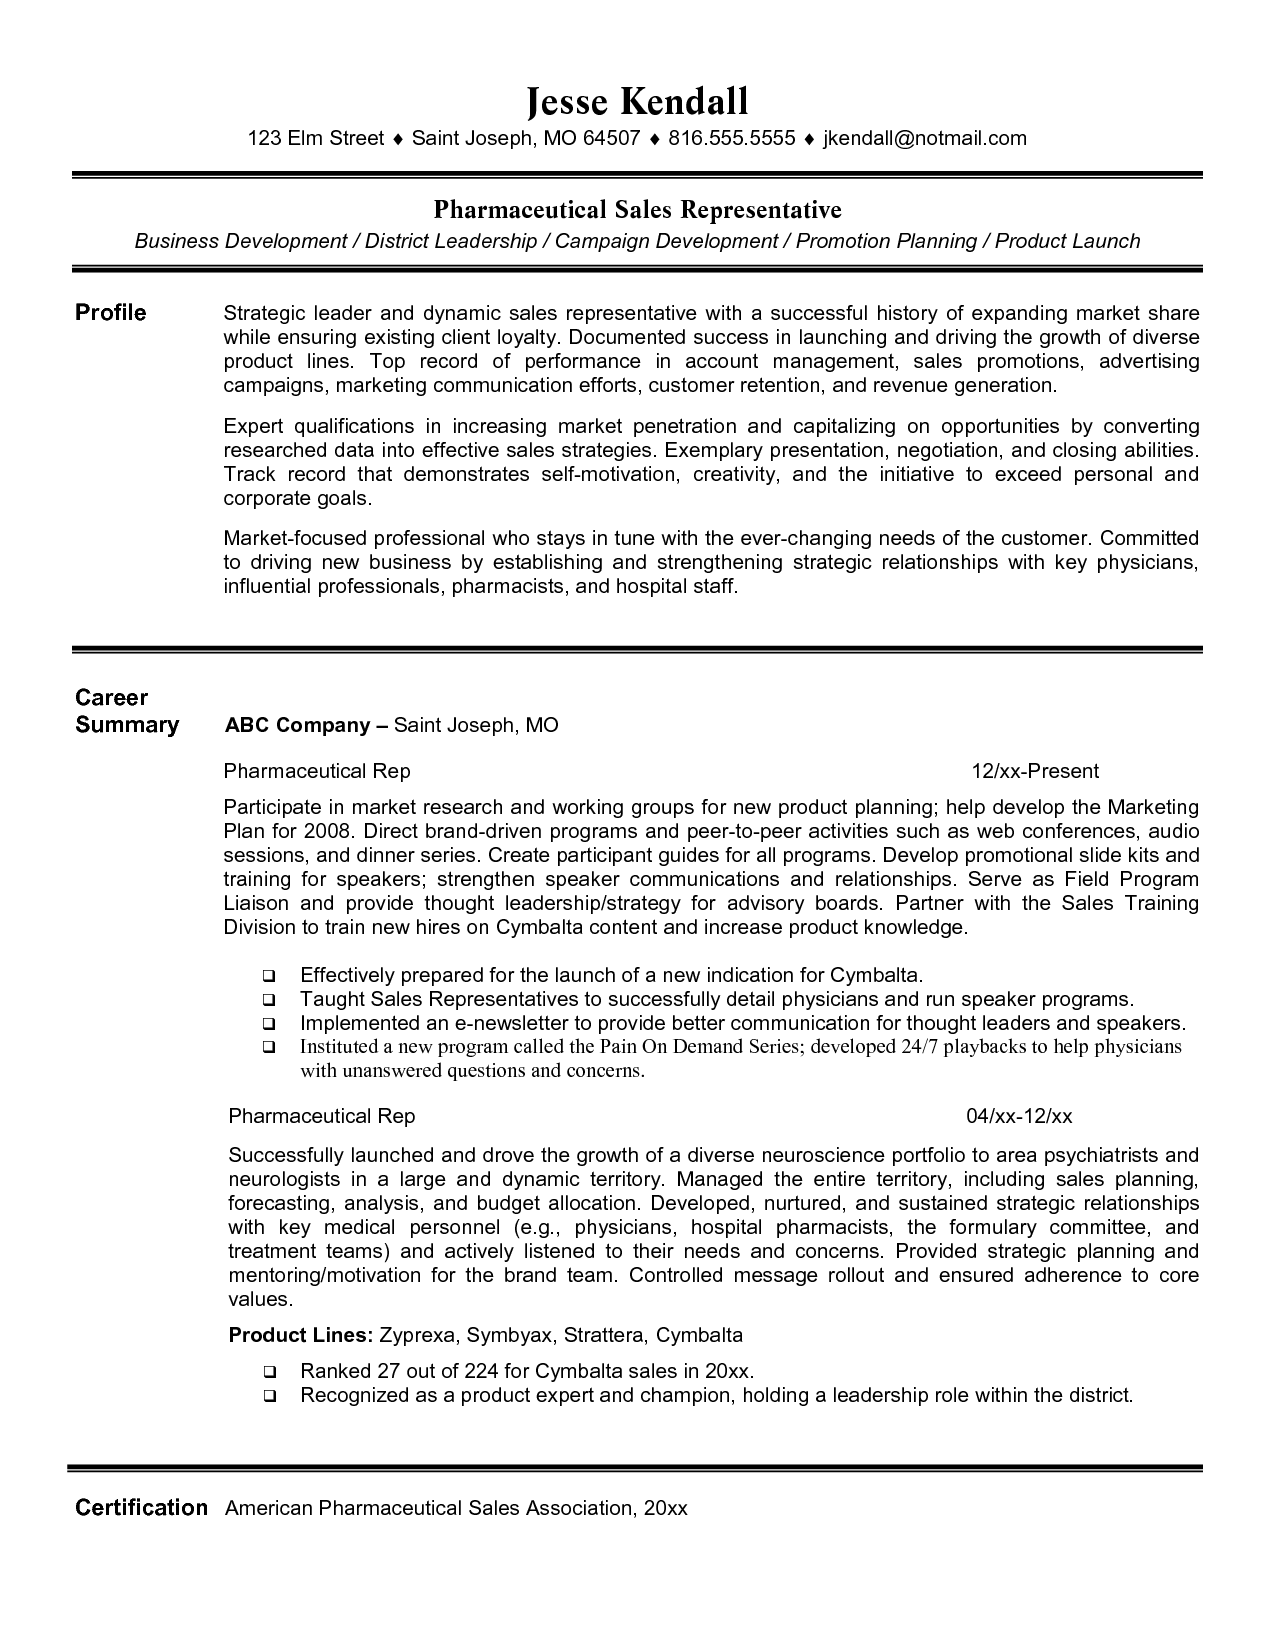 Resume Resume Format Pharma Jobs resume examples for pharmaceutical jobs template sales example medical sales